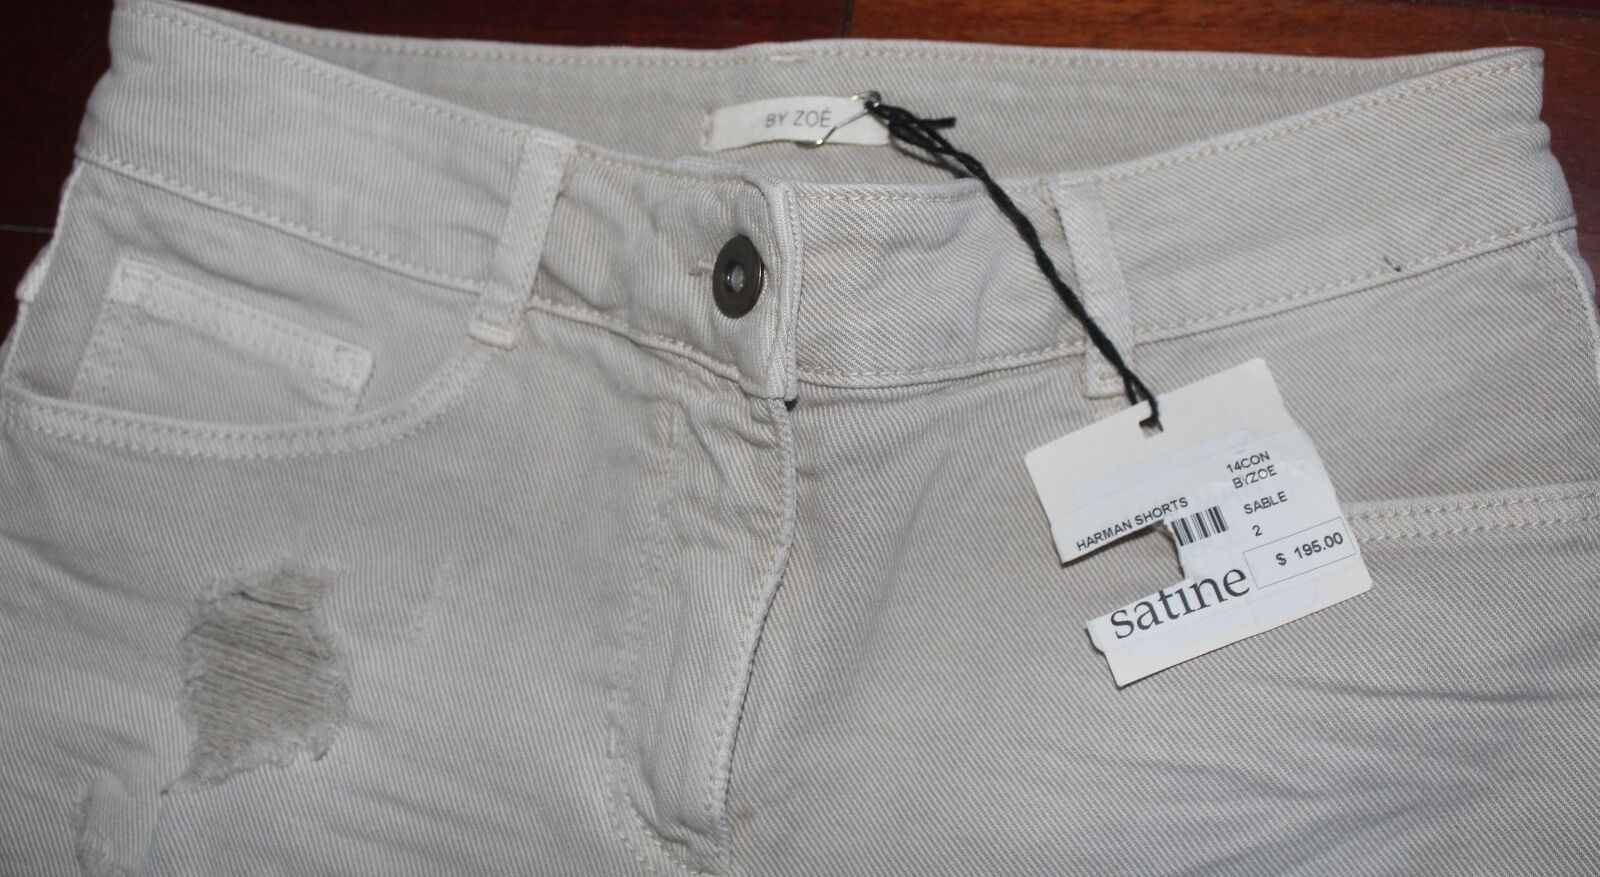 BY ZOE TAN DENIM WOMEN'S SHORTS SIZE 2 NWT RETAILS FOR 195.00